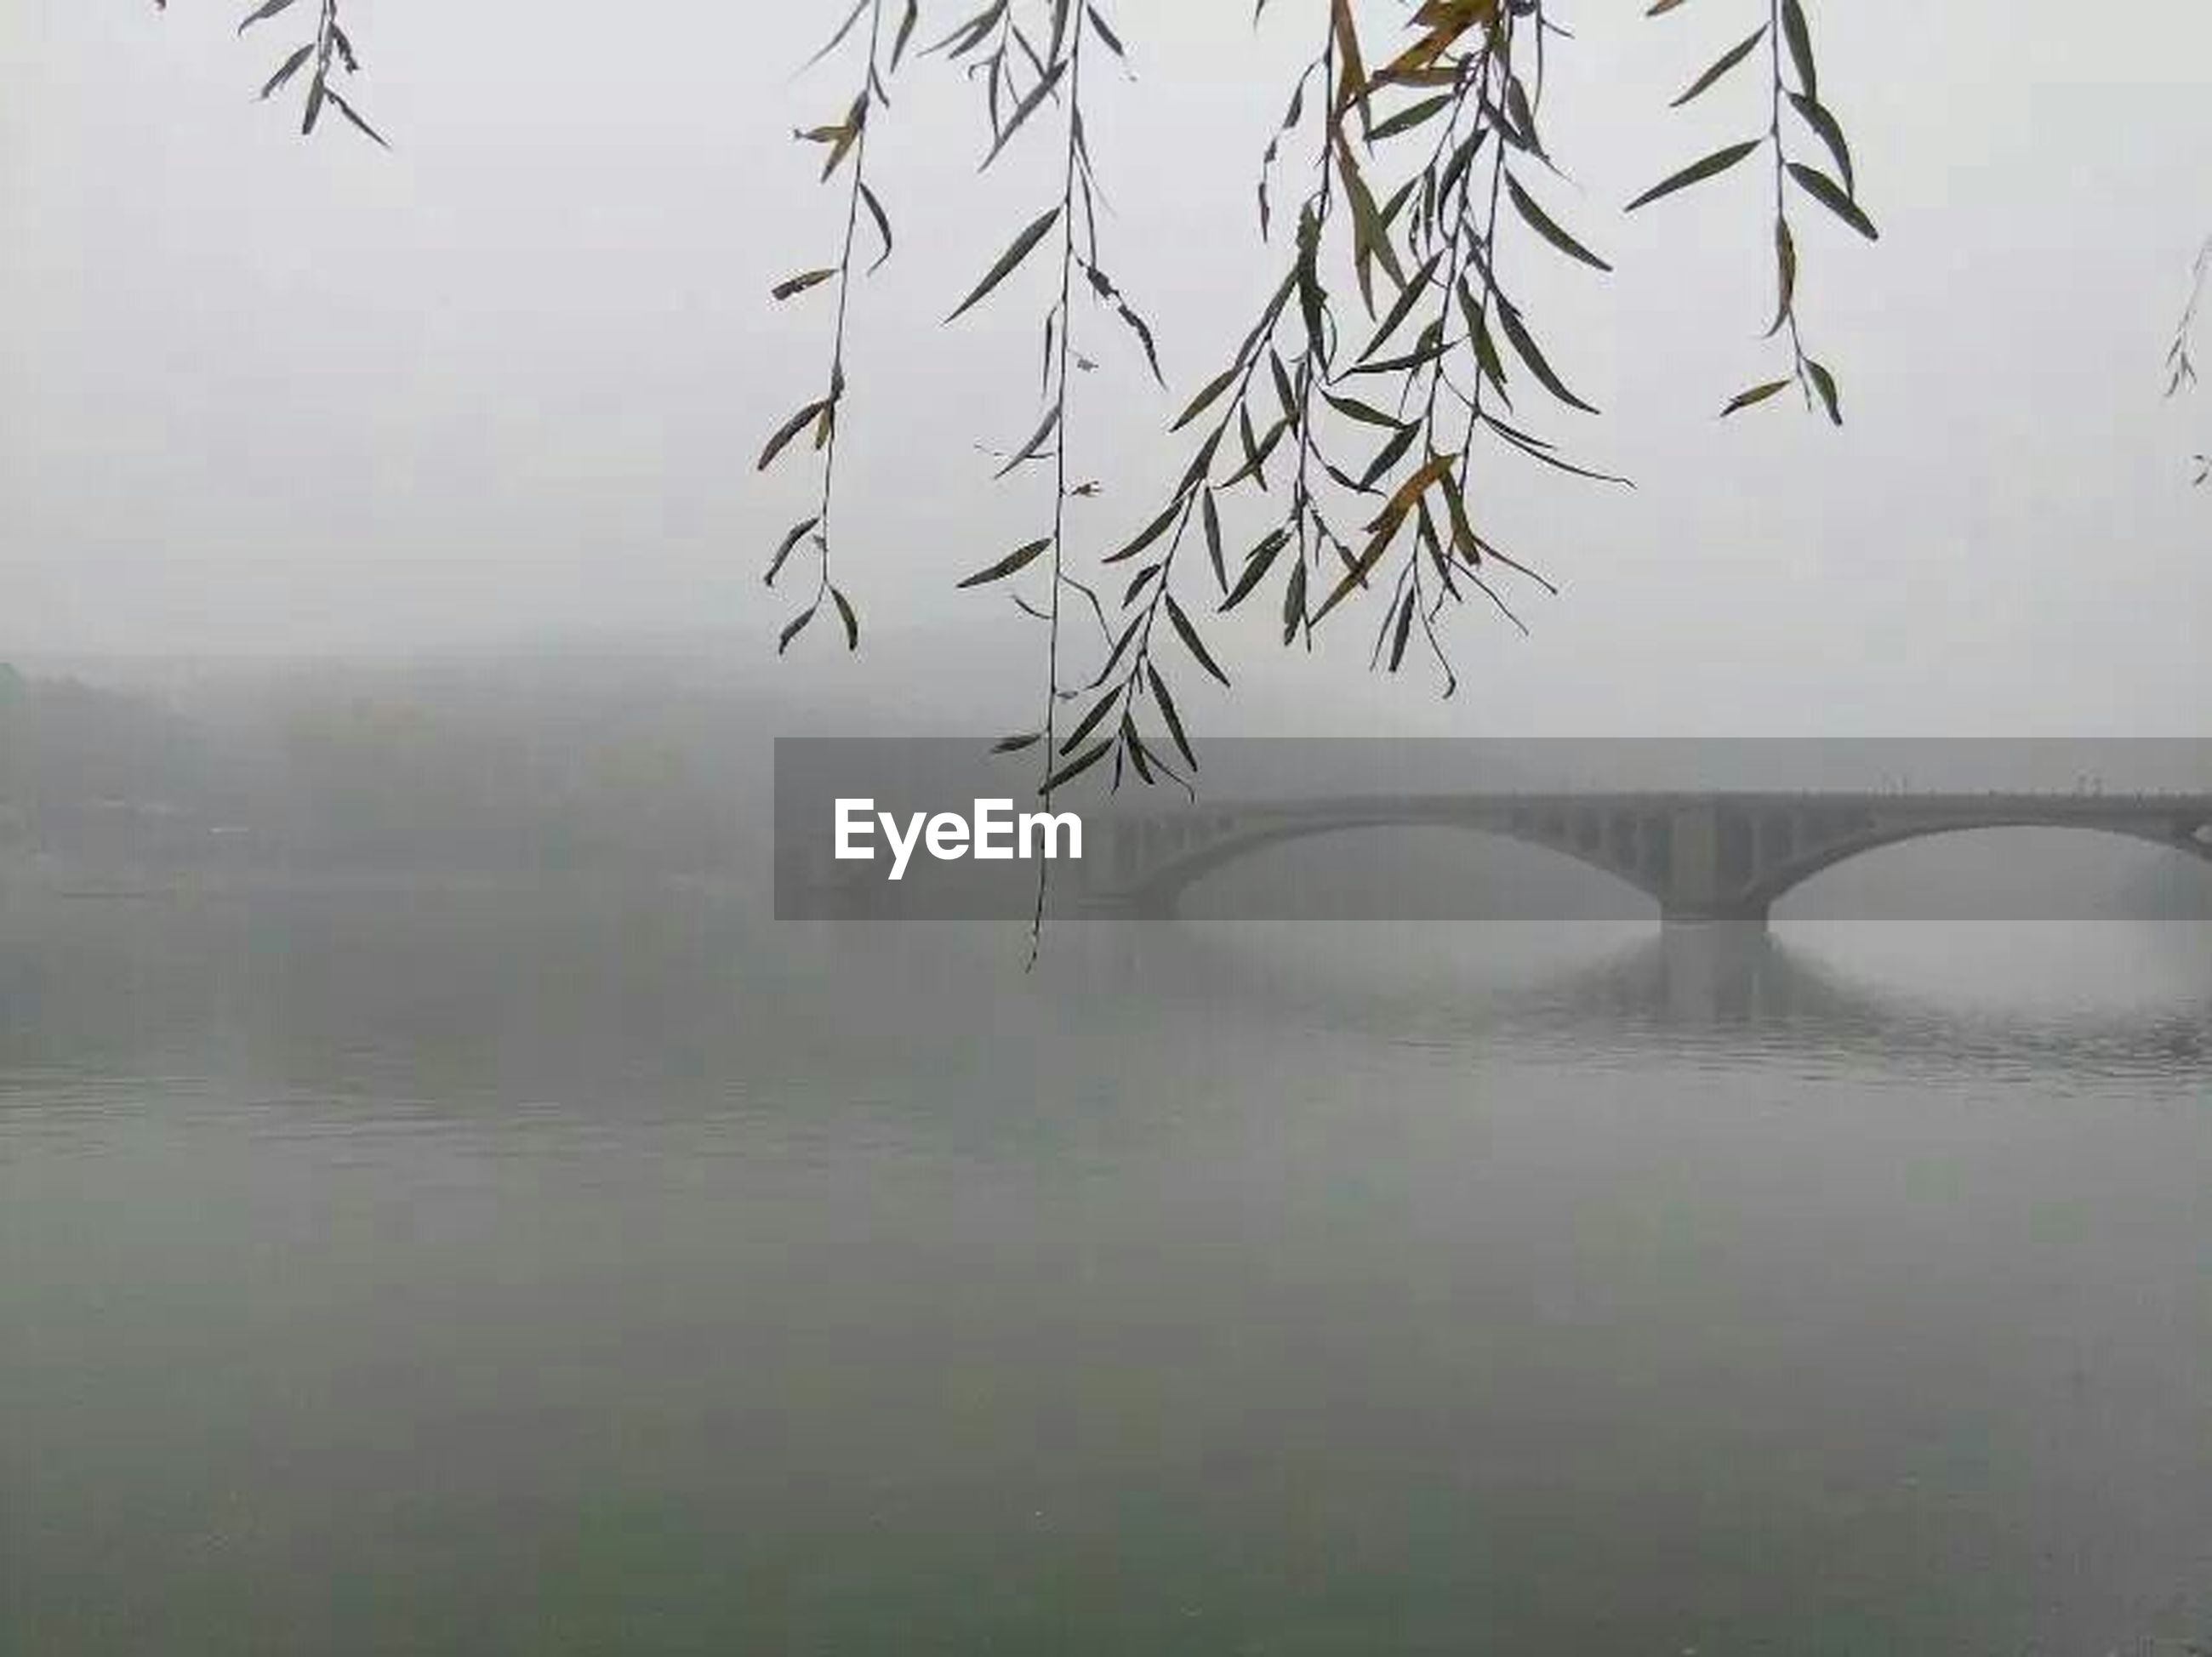 water, fog, reflection, weather, foggy, indoors, nature, waterfront, lake, season, tranquility, built structure, tree, branch, bare tree, day, transparent, no people, wet, glass - material